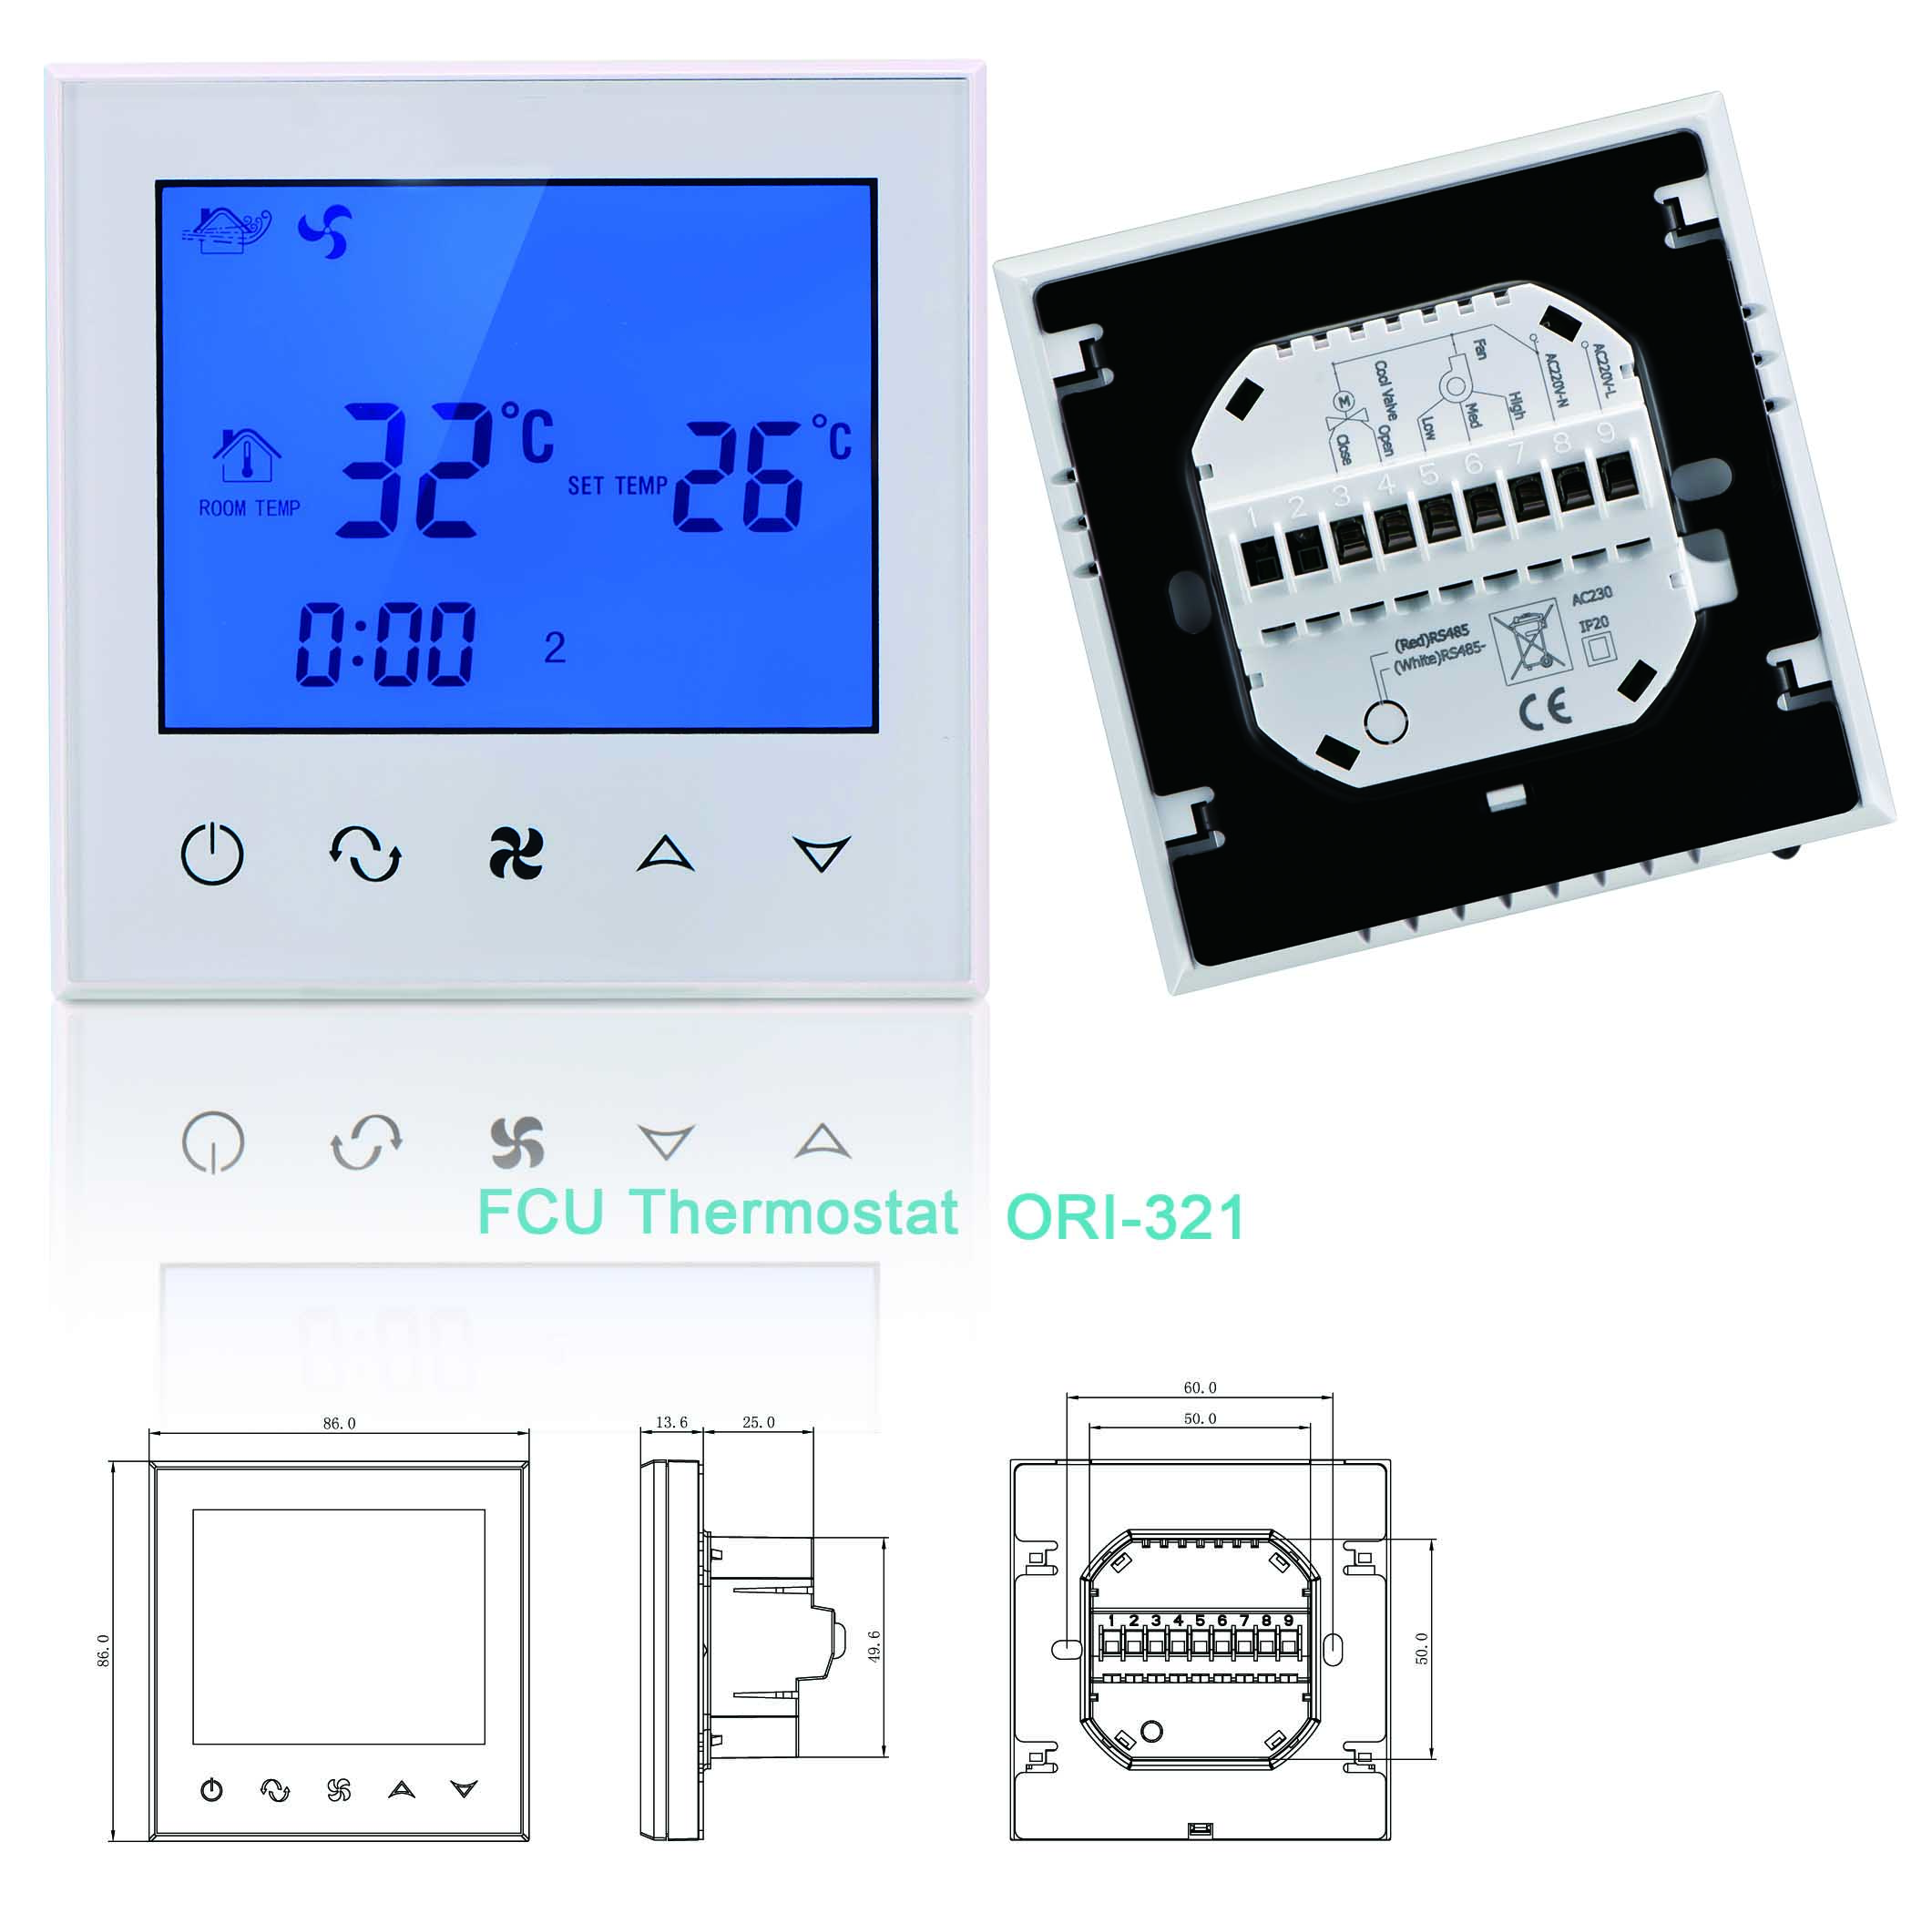 FCU Thermostat ORI-231